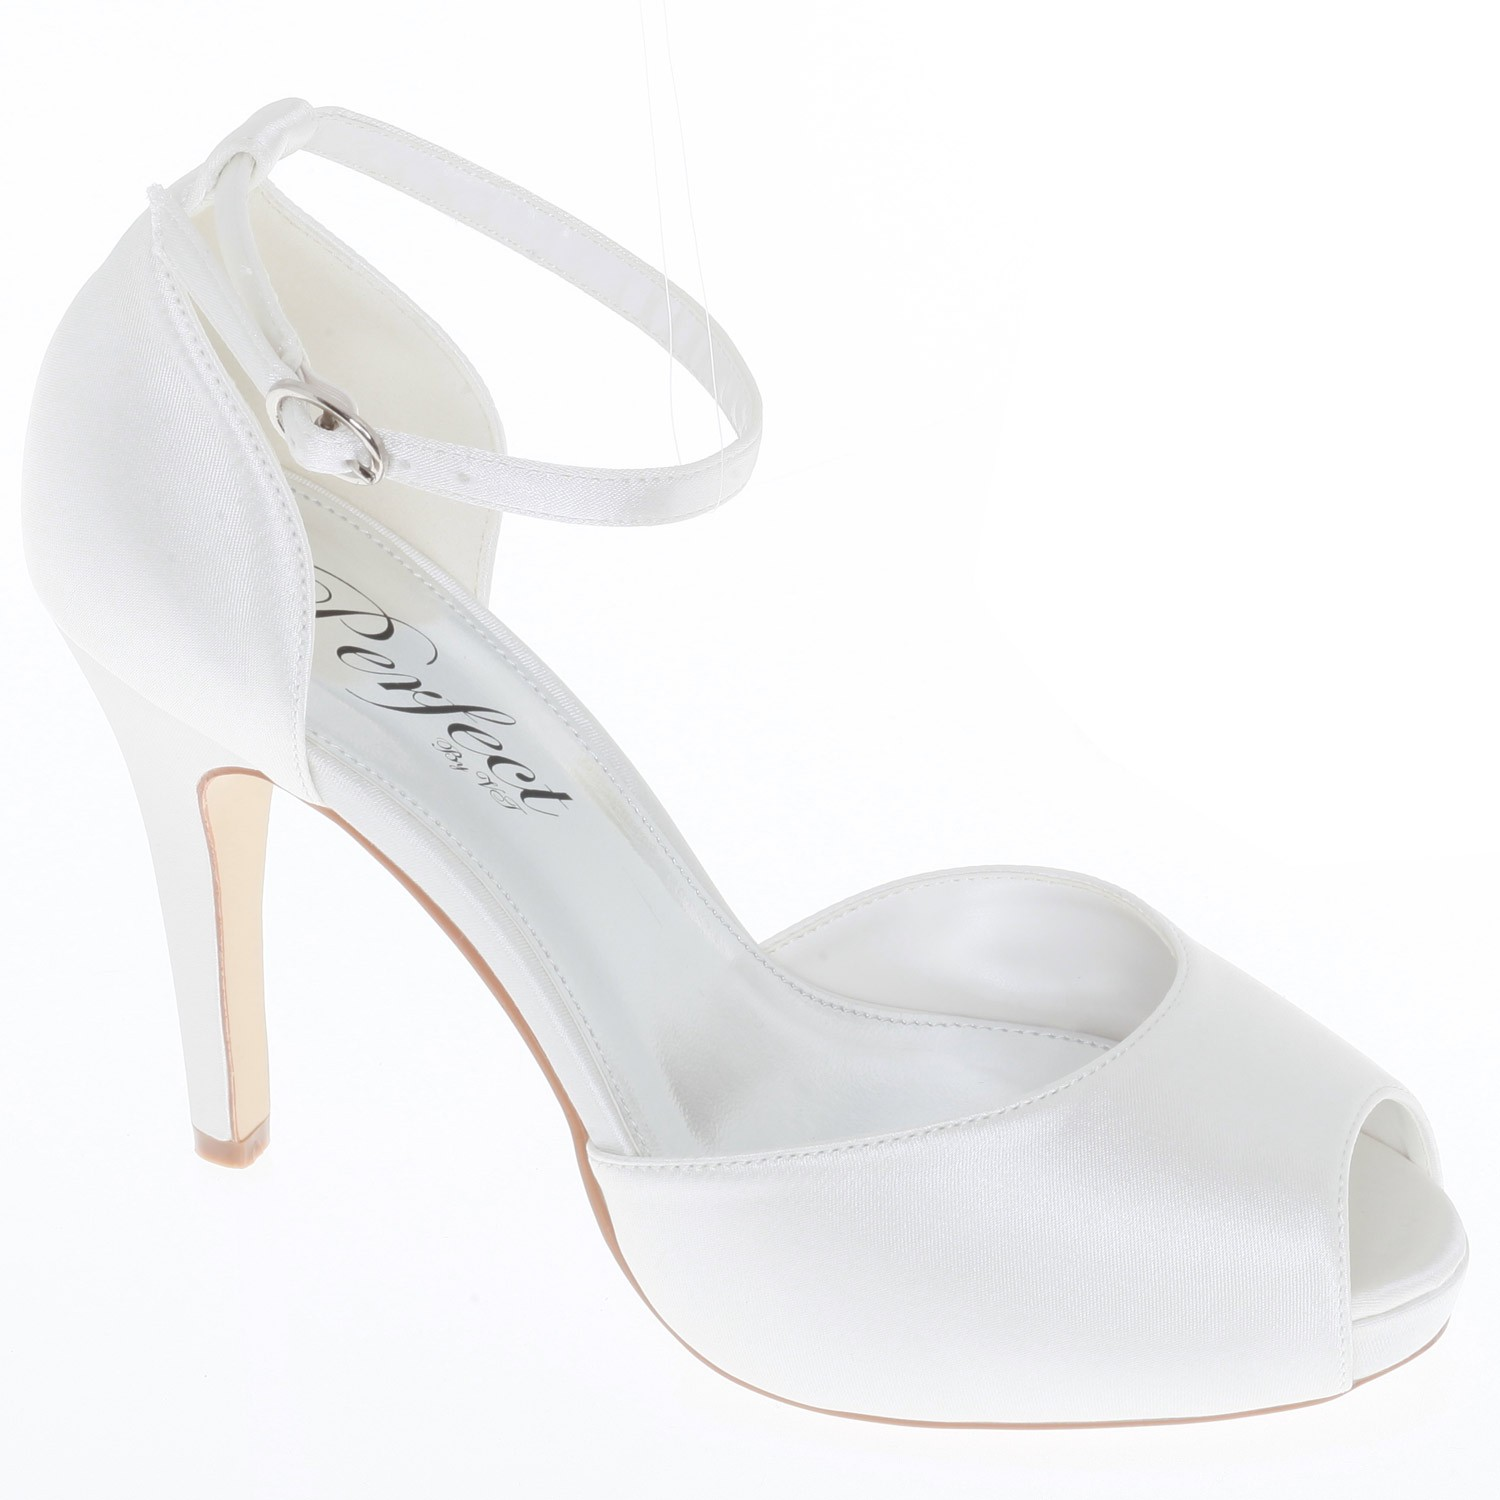 chaussures de marie bout ouvert bride kirsten - Besson Chaussures Mariage